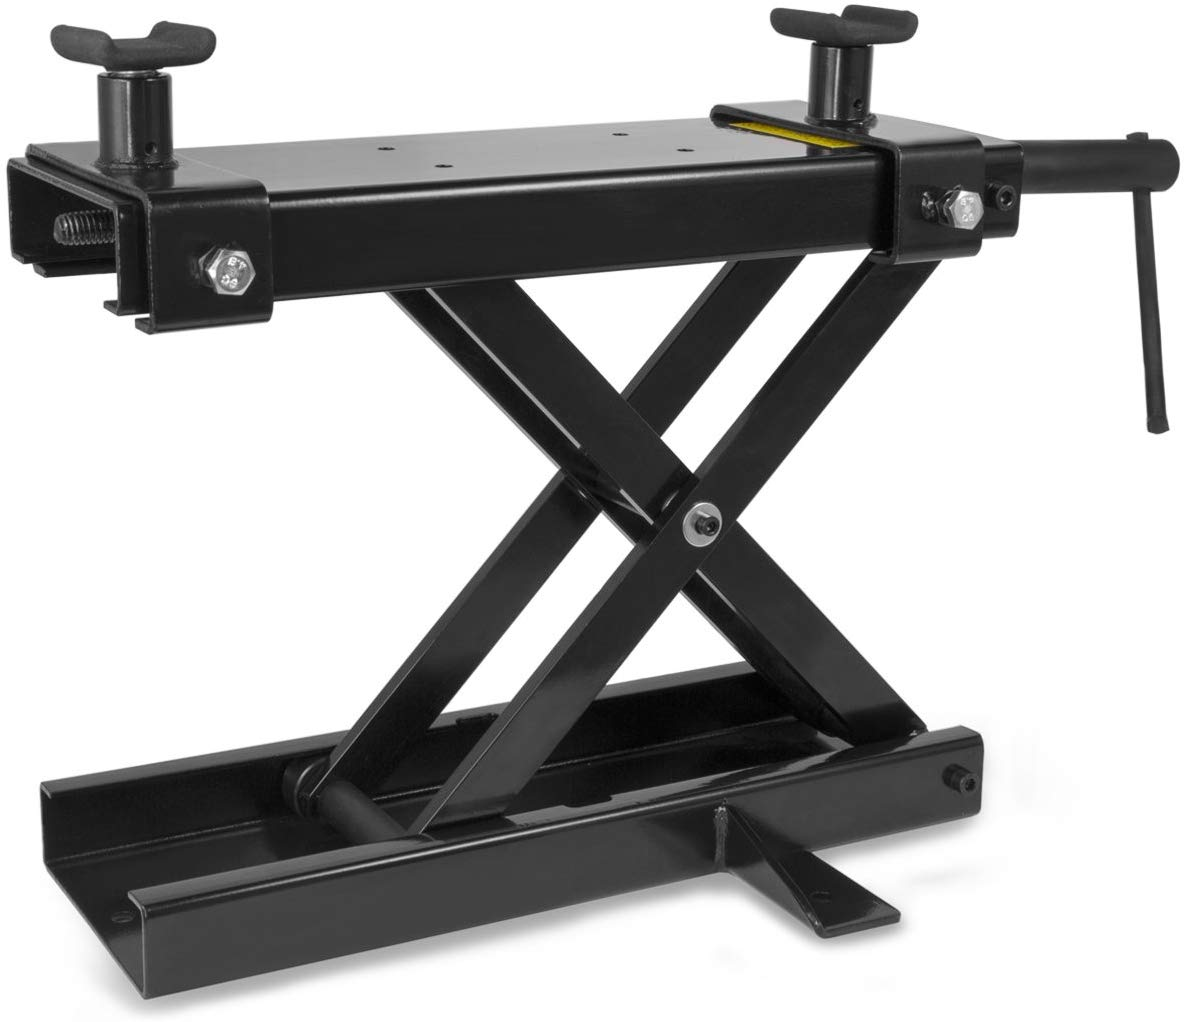 7. Motorcycle Scissor Center Jack Lift Stand by STKUSA